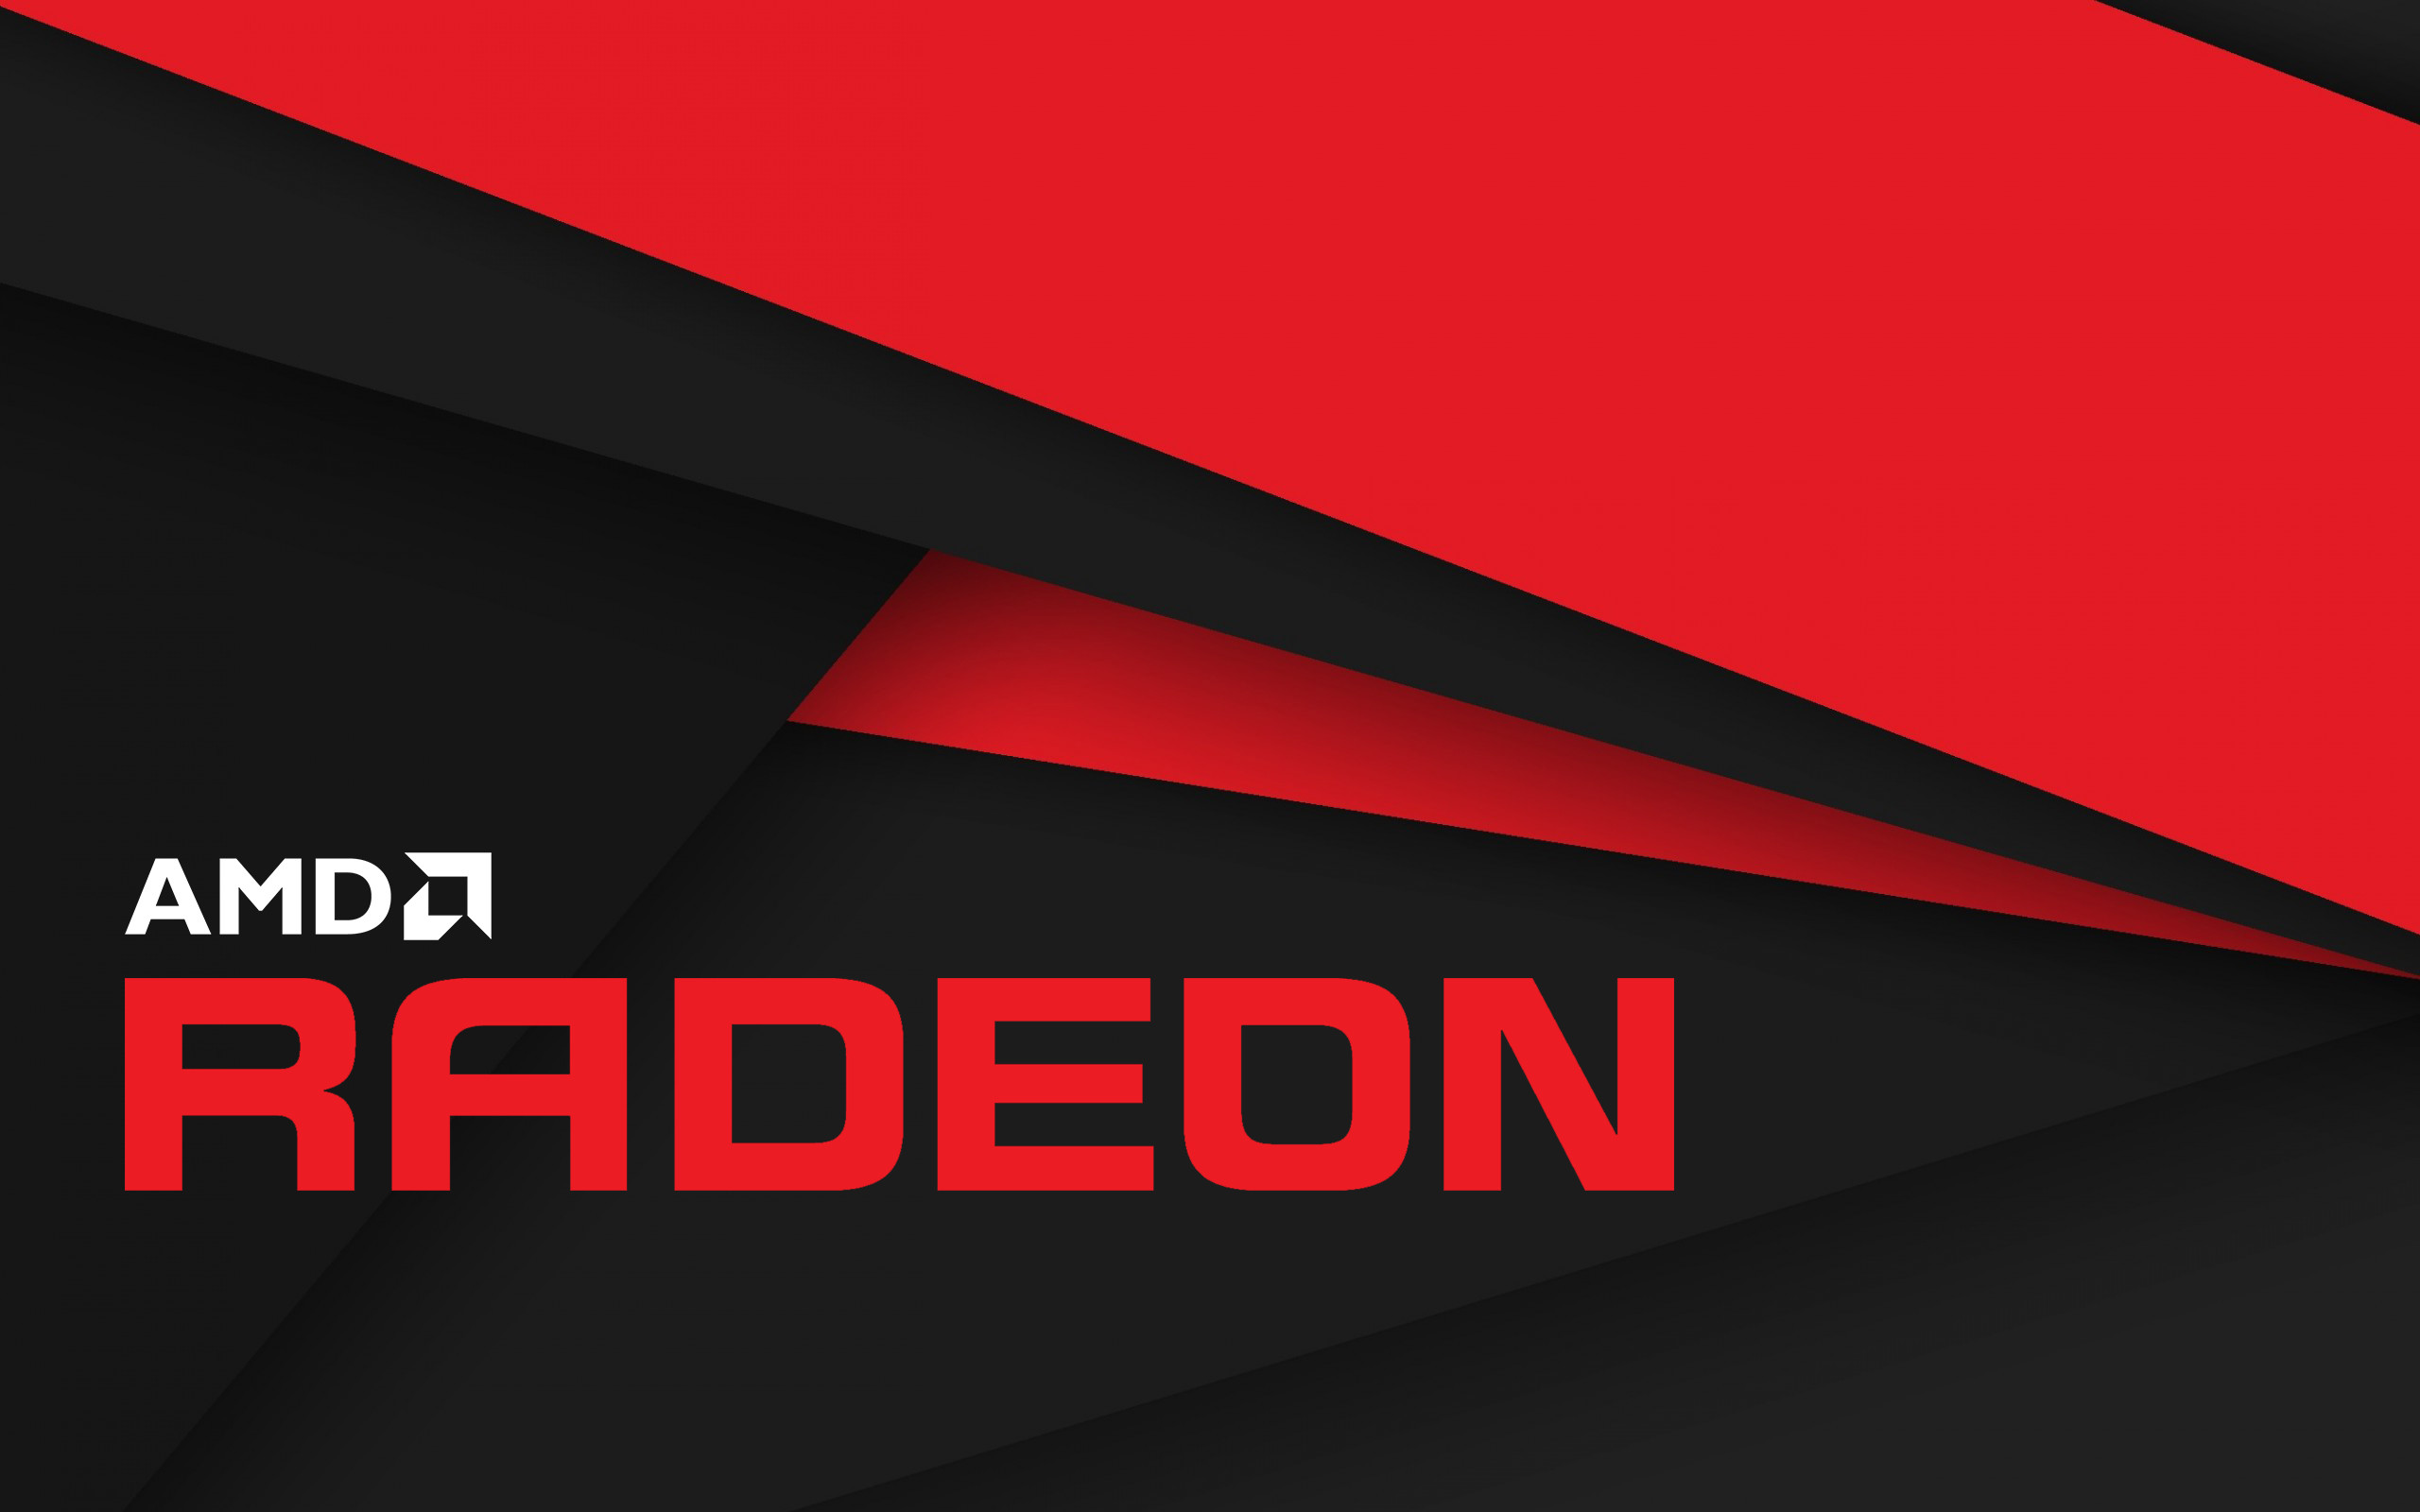 UPDATED: Add some more Radeon walls and MSI request!